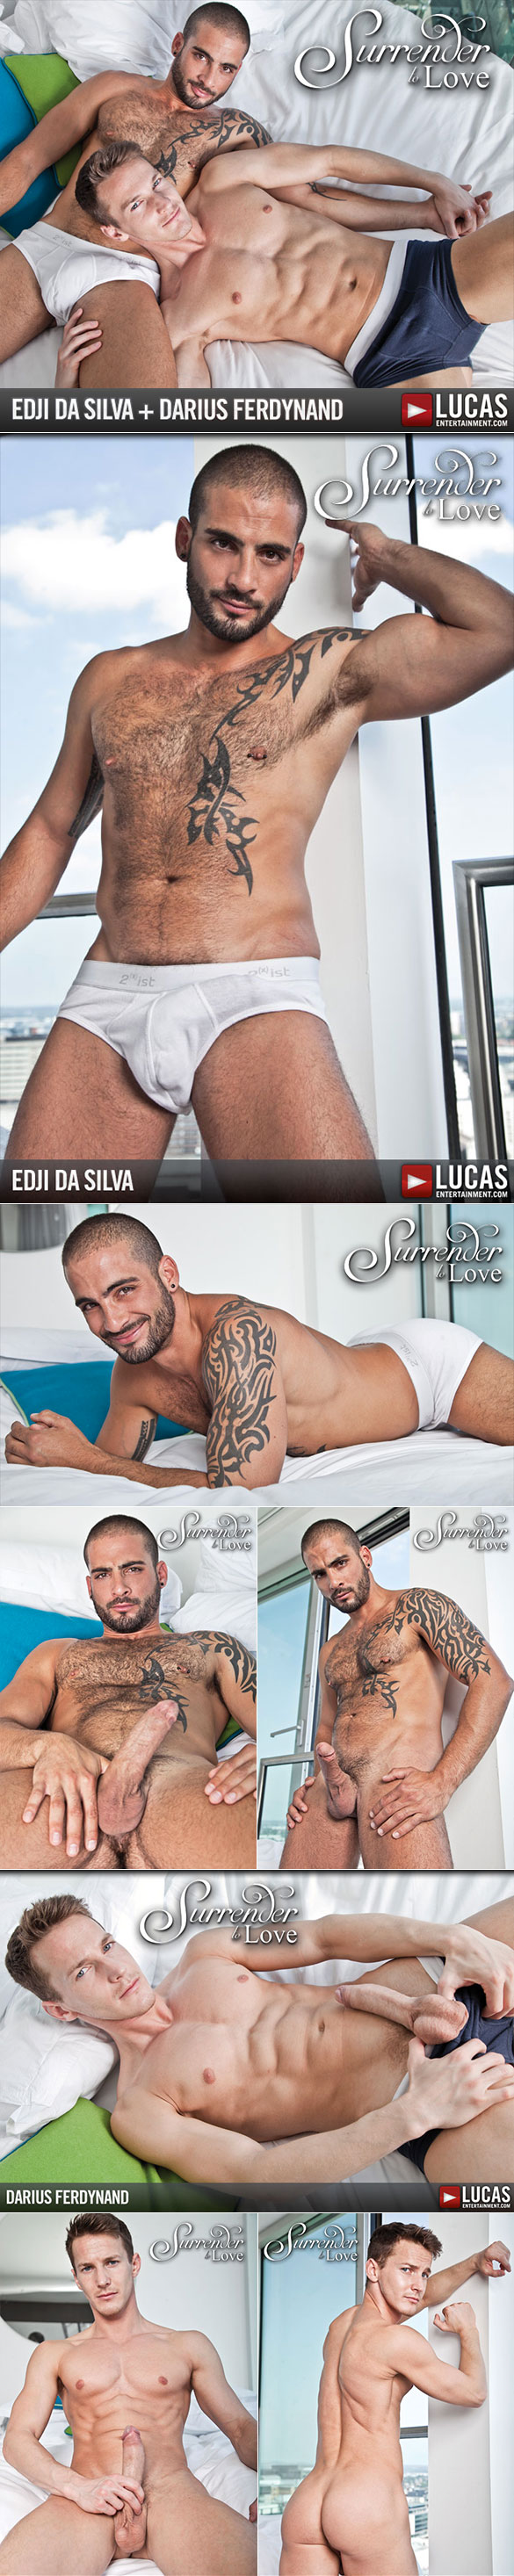 "Lucas Entertainment: Darius Ferdynand gets fucked by Edji Da Silva in ""Surrender to Love"""